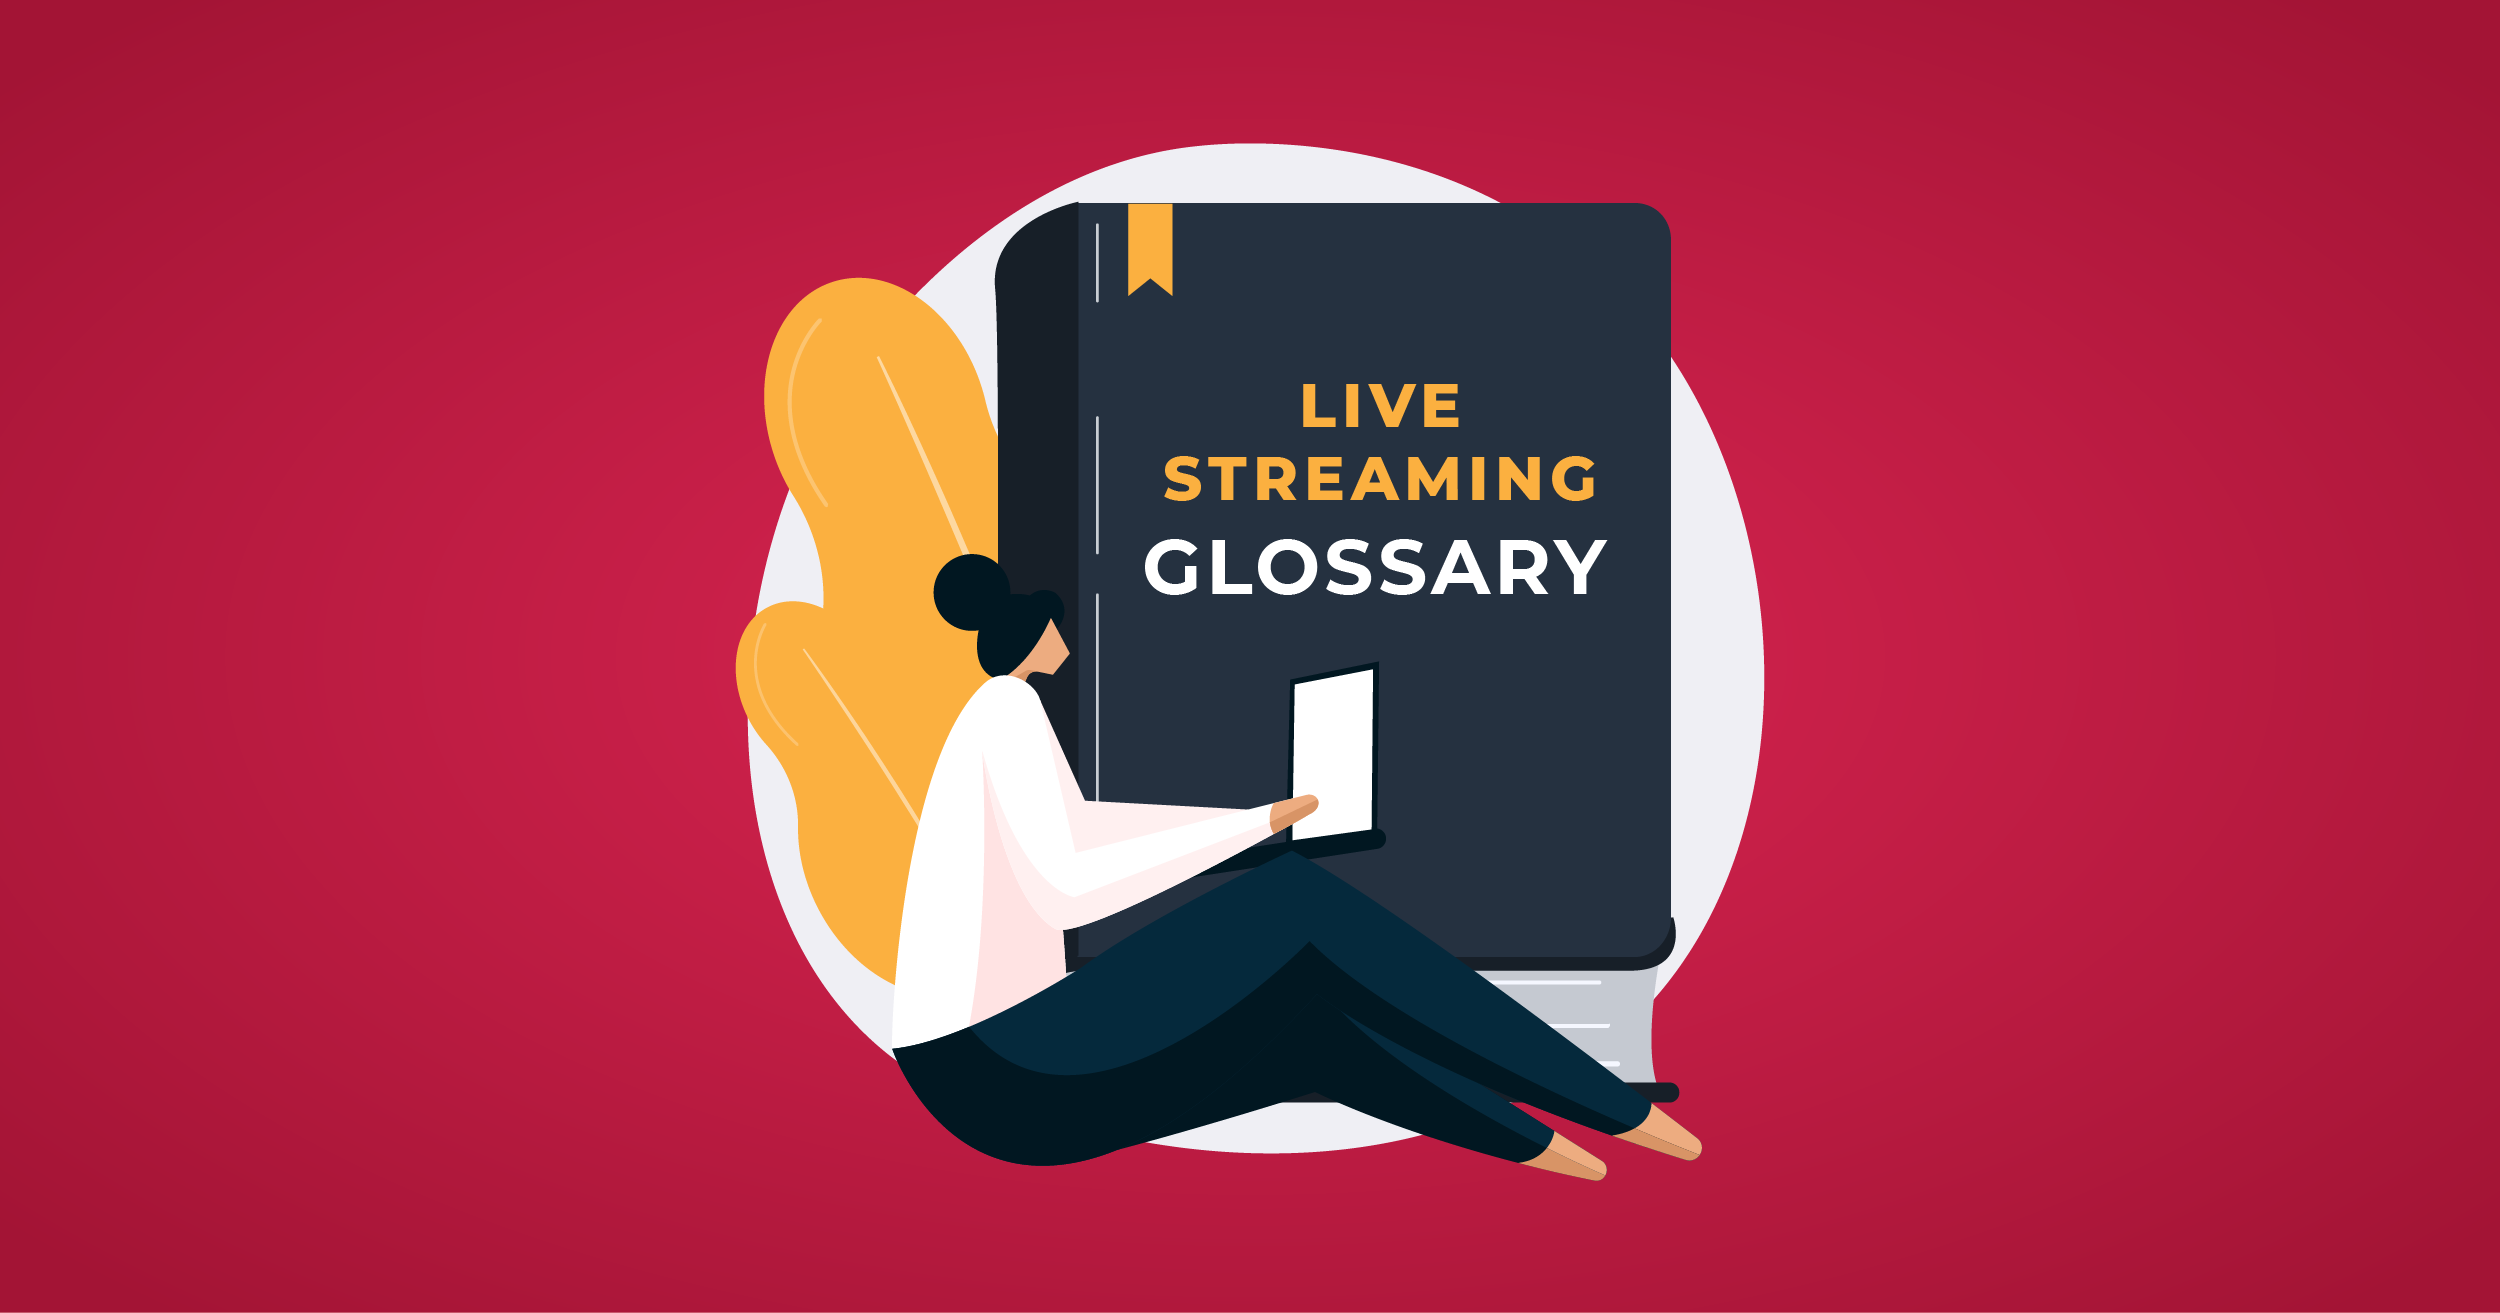 Live Streaming Glossary of Most Common Terms